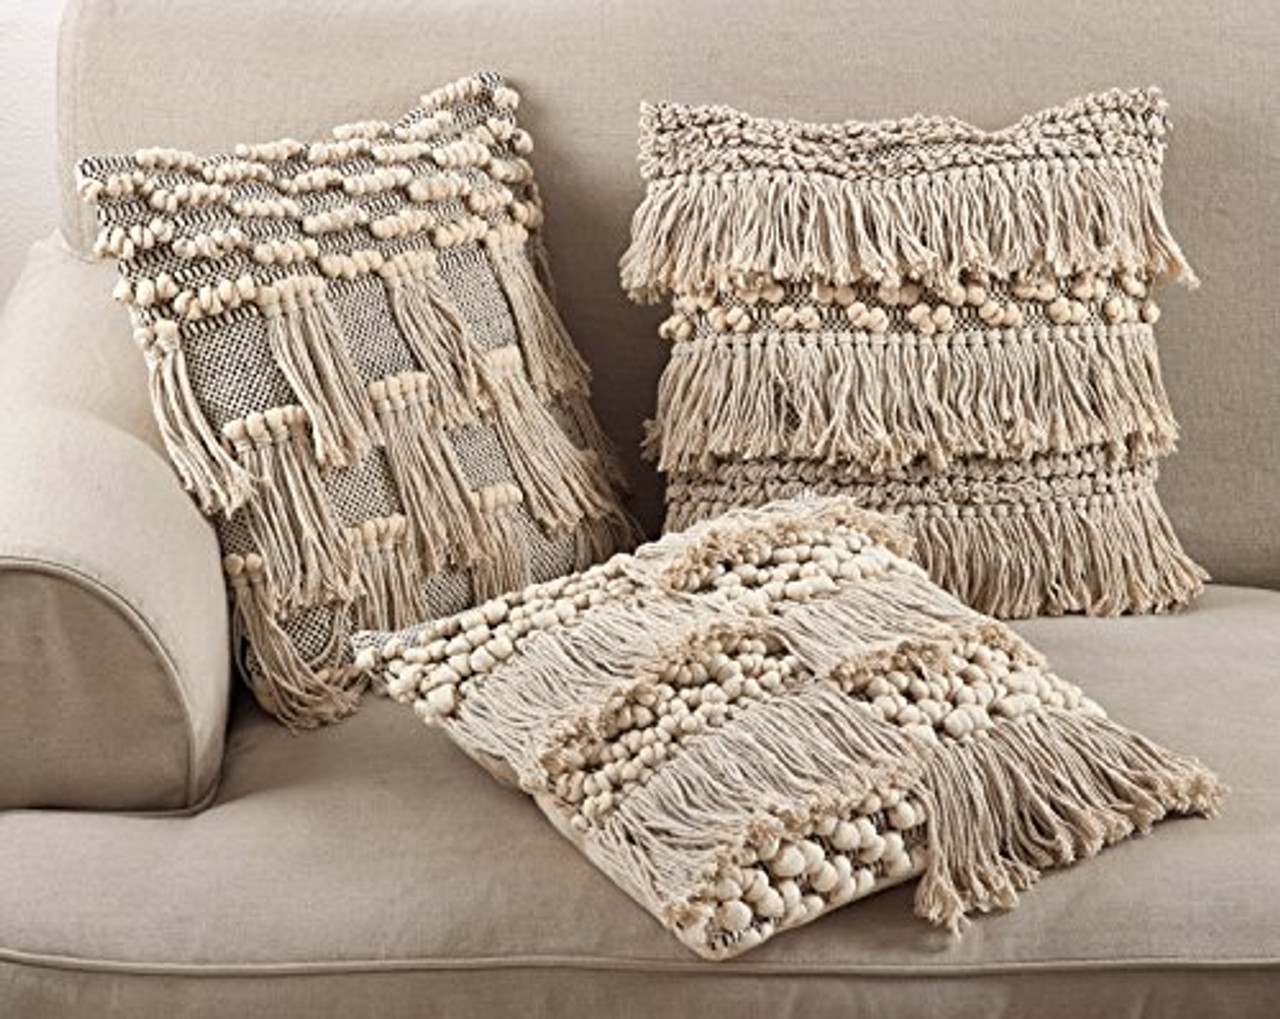 Moroccan Wedding Blanket.Moroccan Wedding Blanket Style Design Fringe Cotton Down Filled Throw Pillow